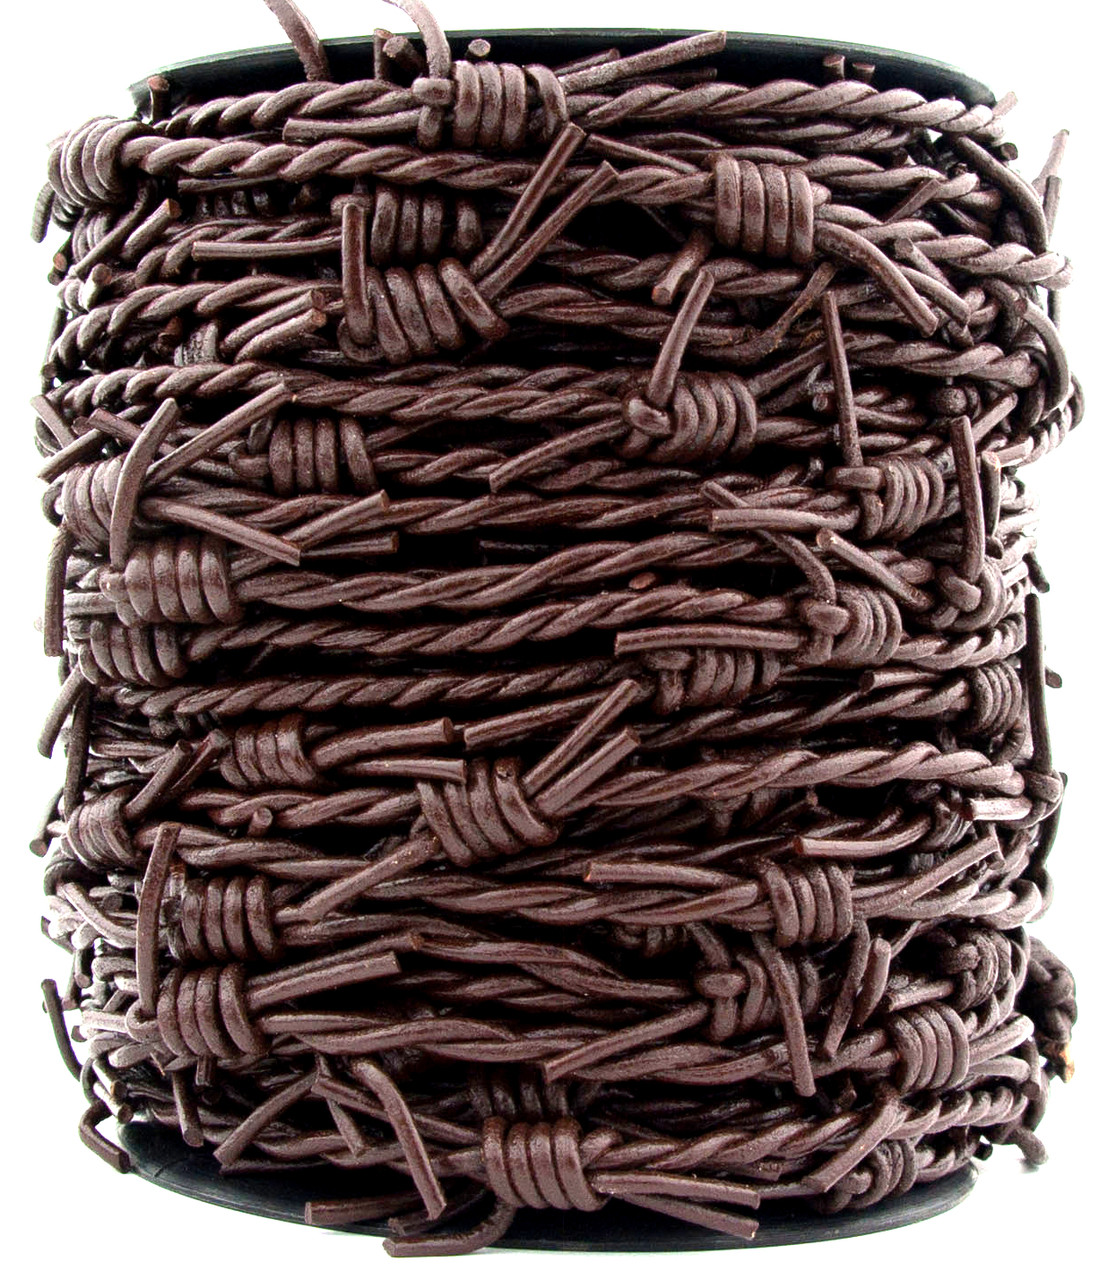 Black woderful Genuine Round Leather Cords for Bracelet Neckacle Beading Jewelry Making 10 Meter